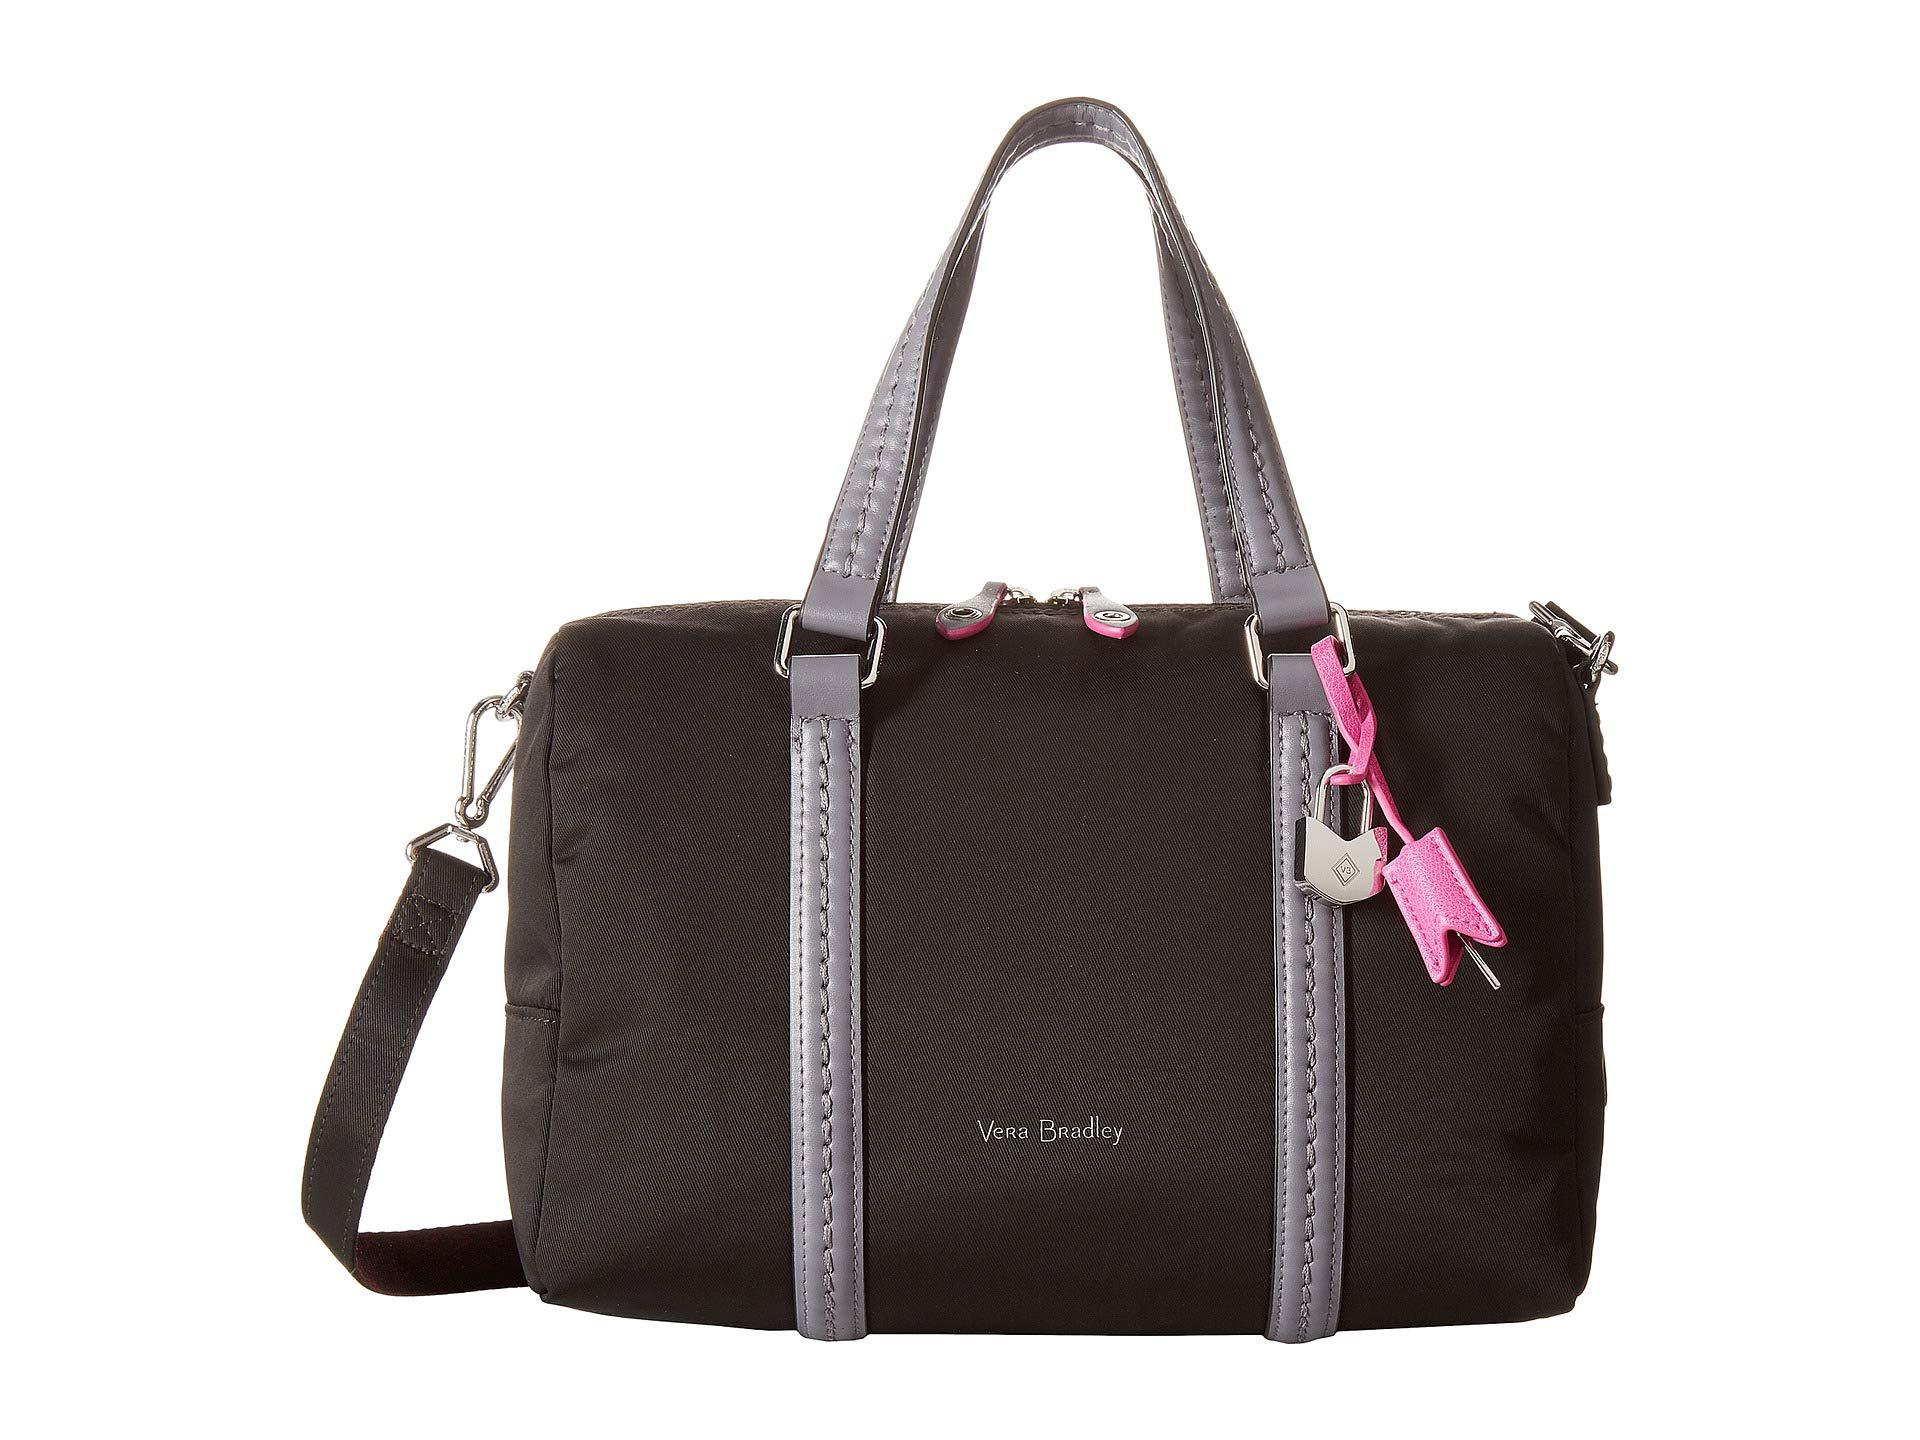 313b848a57 Vera Bradley - Midtown Satchel (black) Satchel Handbags - Lyst. View  fullscreen